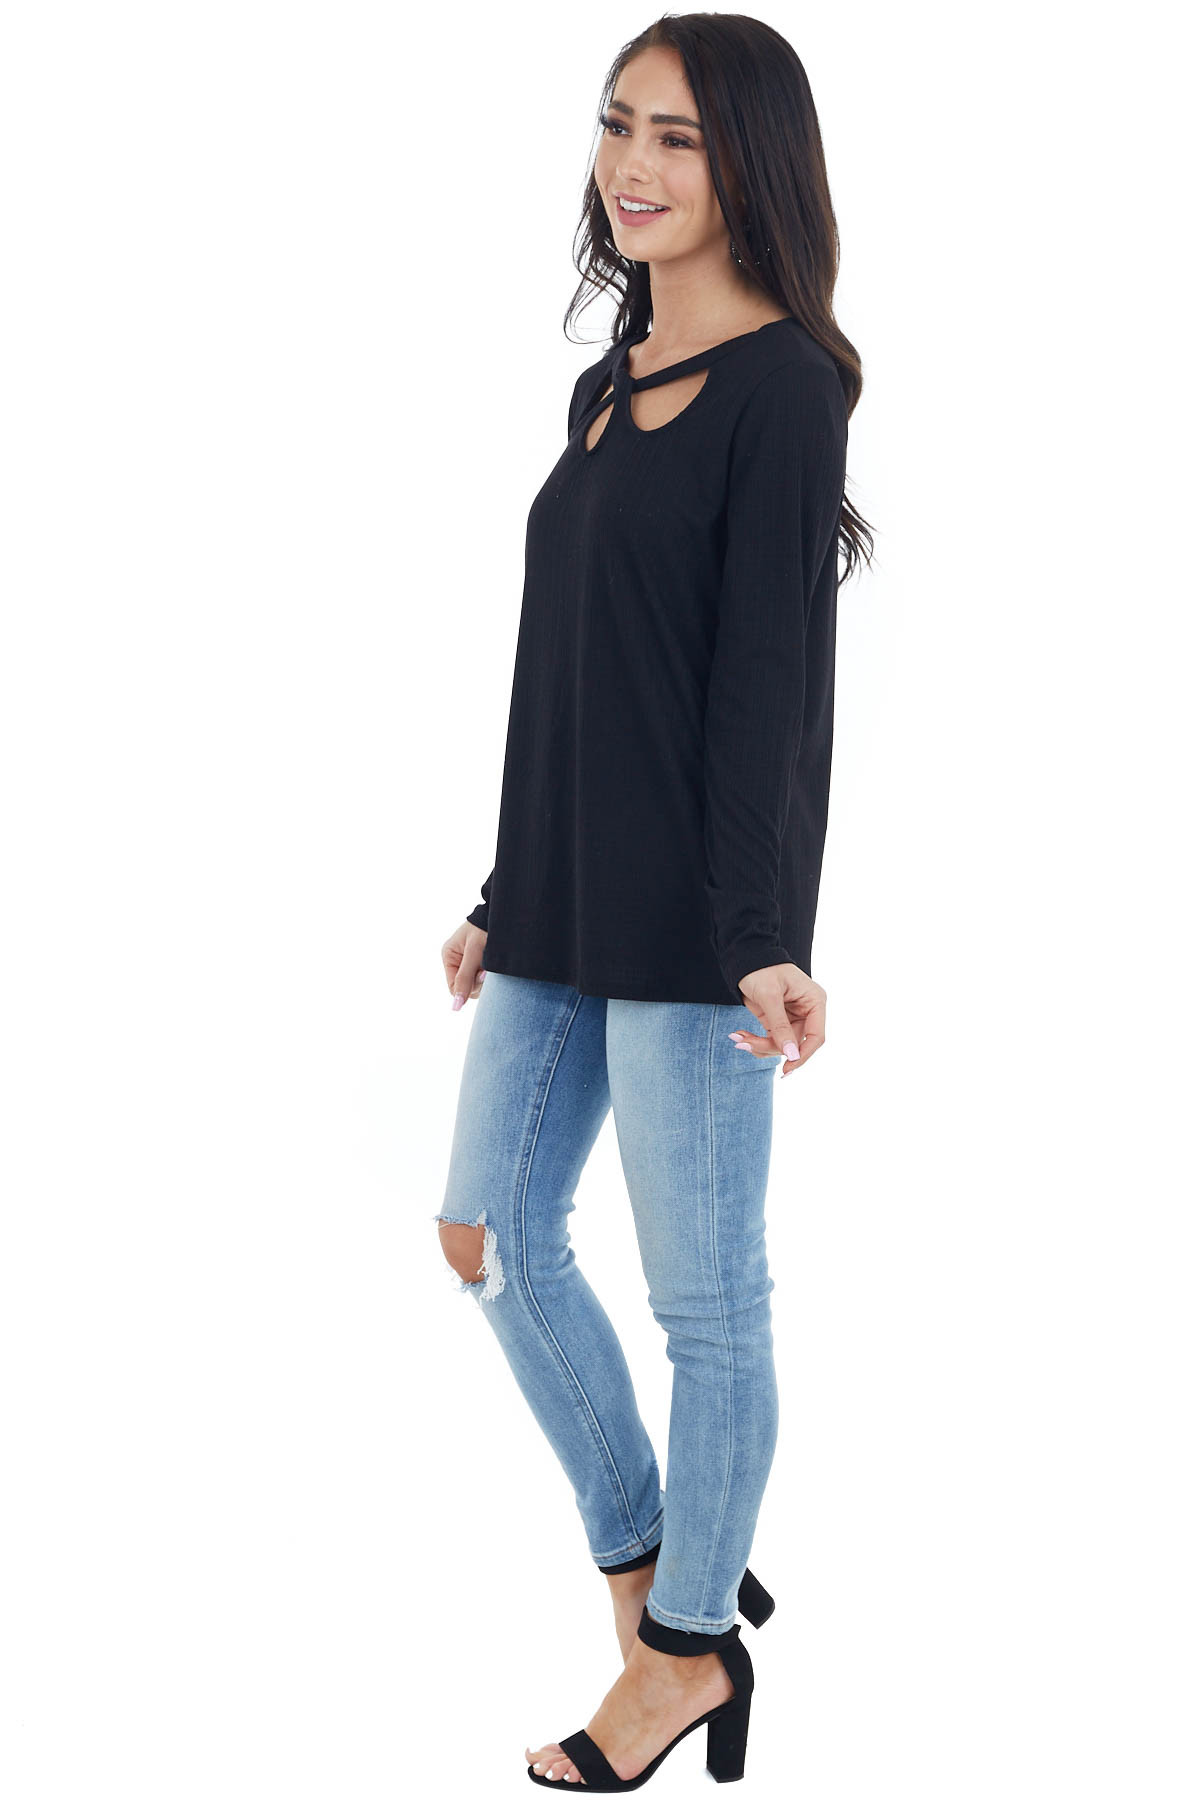 Black Long Sleeve Textured Knit Top with Chest Cutout